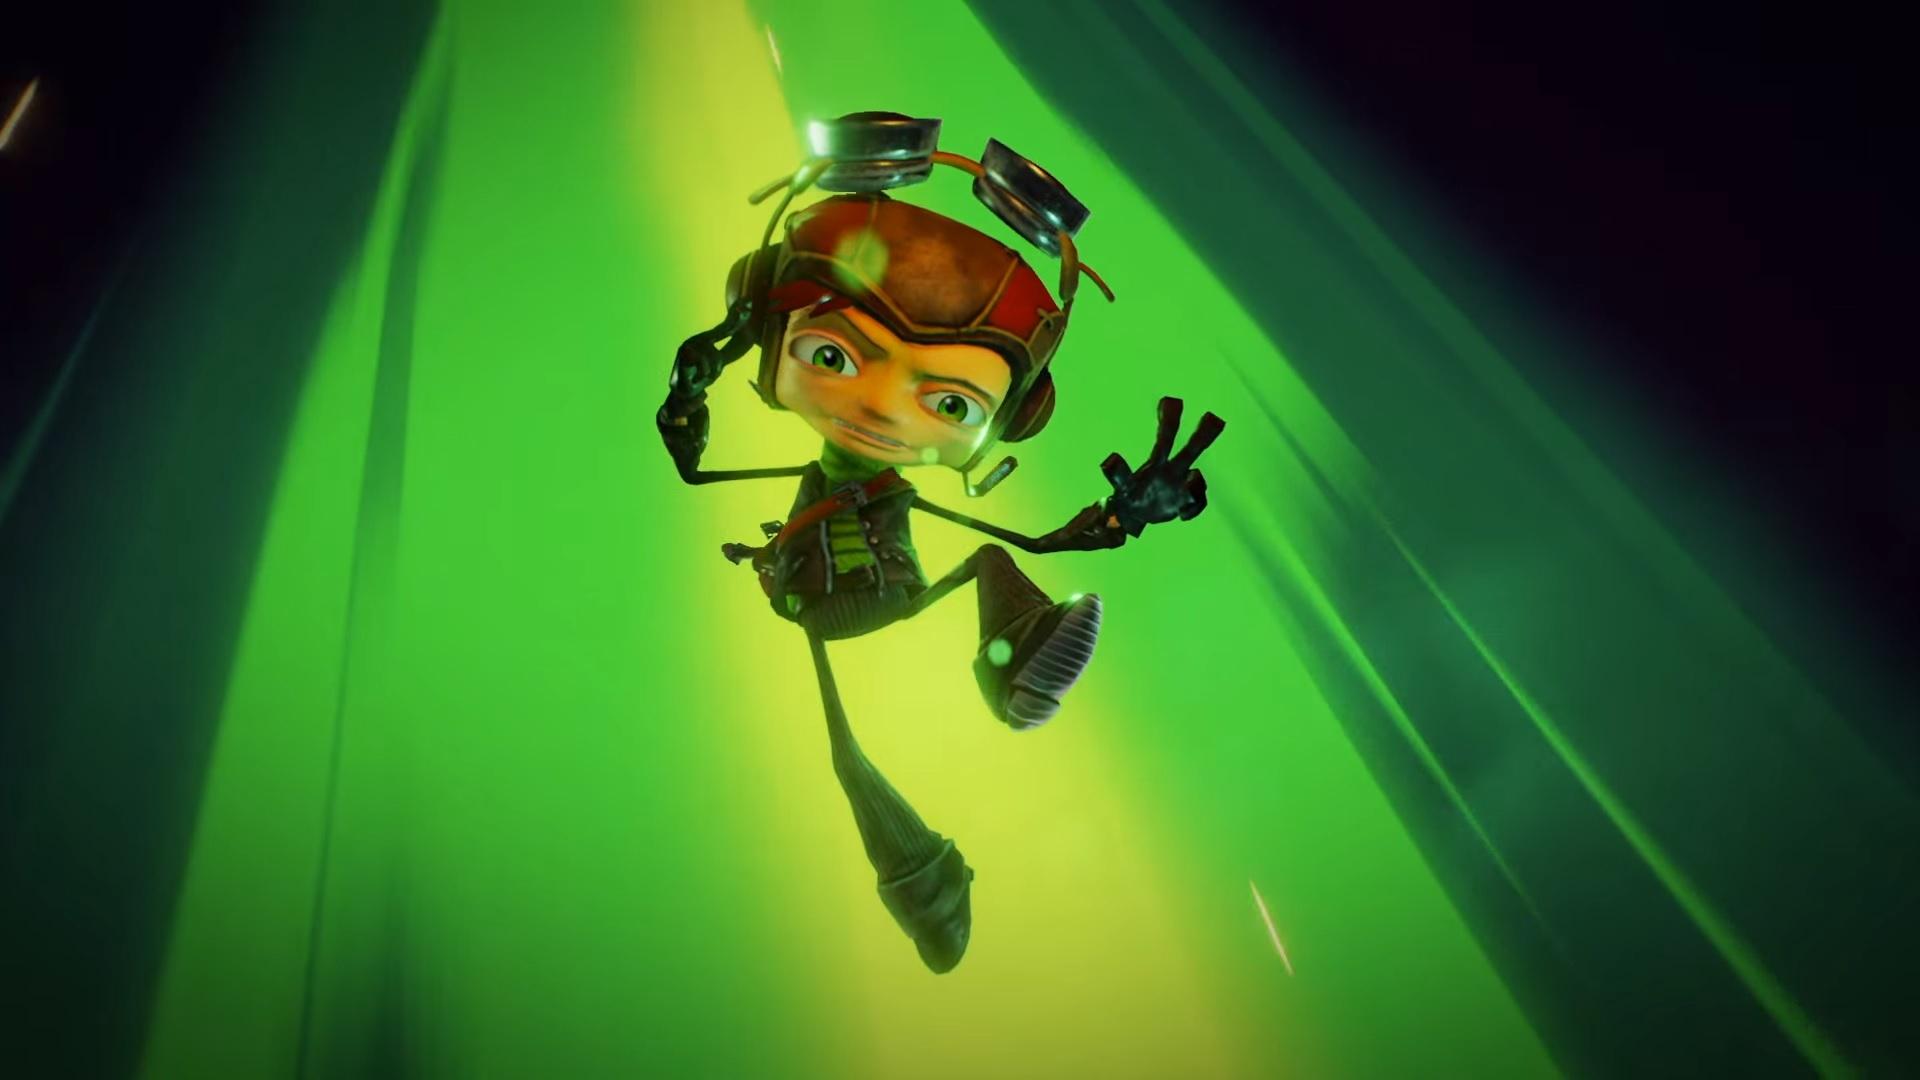 Psychonauts 2 announced crowdfunding campaign launched 1920x1080